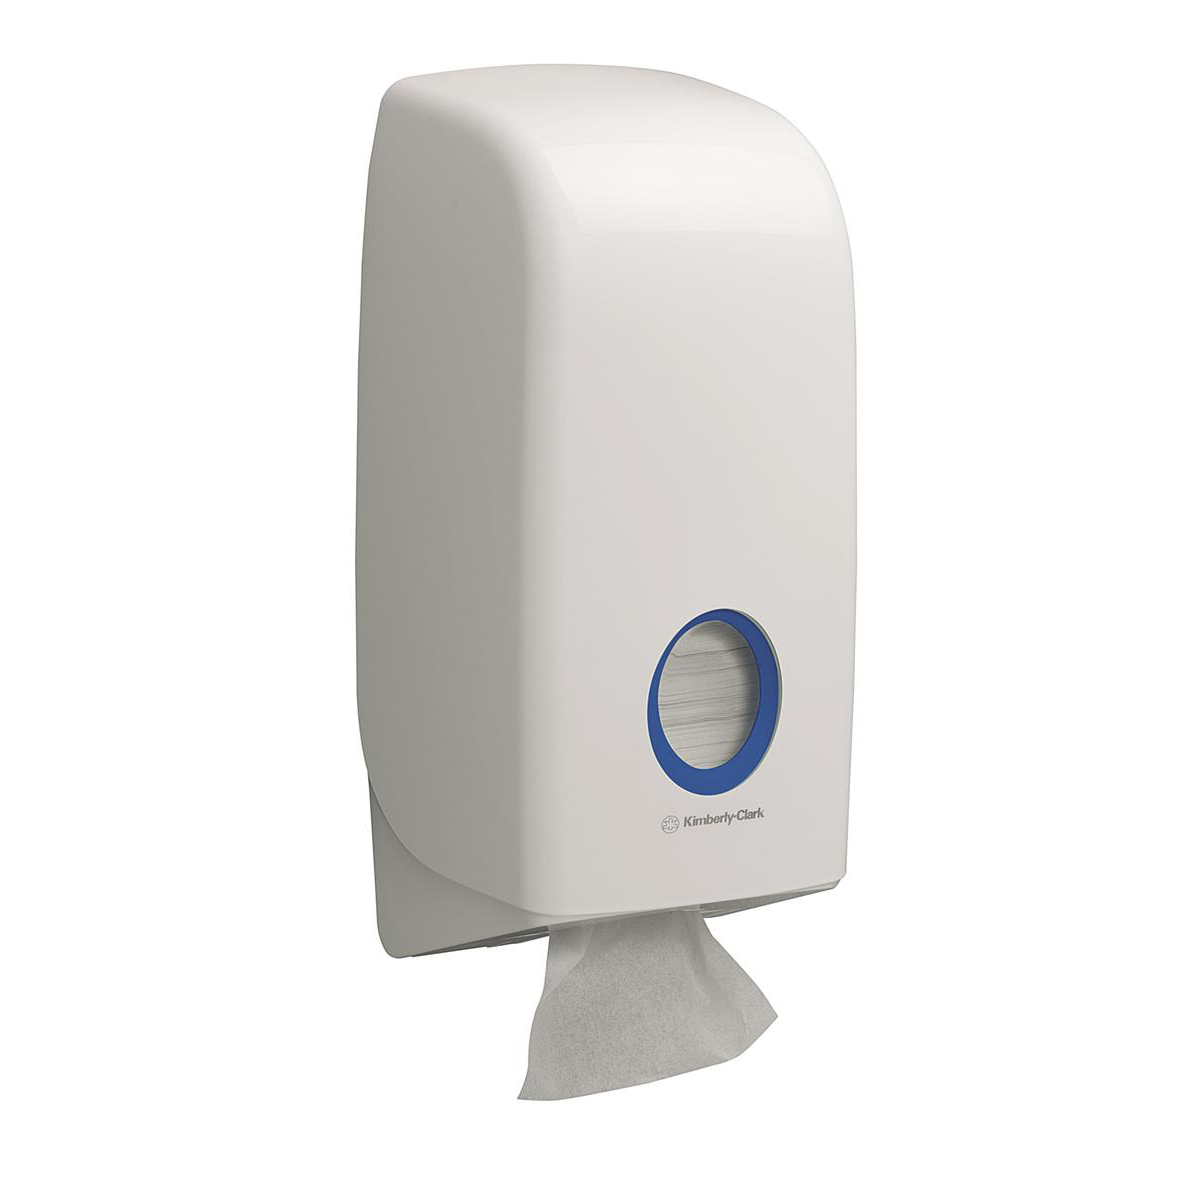 Kimberly-Clark AQUARIUS* Bulk Pack Toilet Tissue Dispenser W168xD123xH341mm White Ref 6946